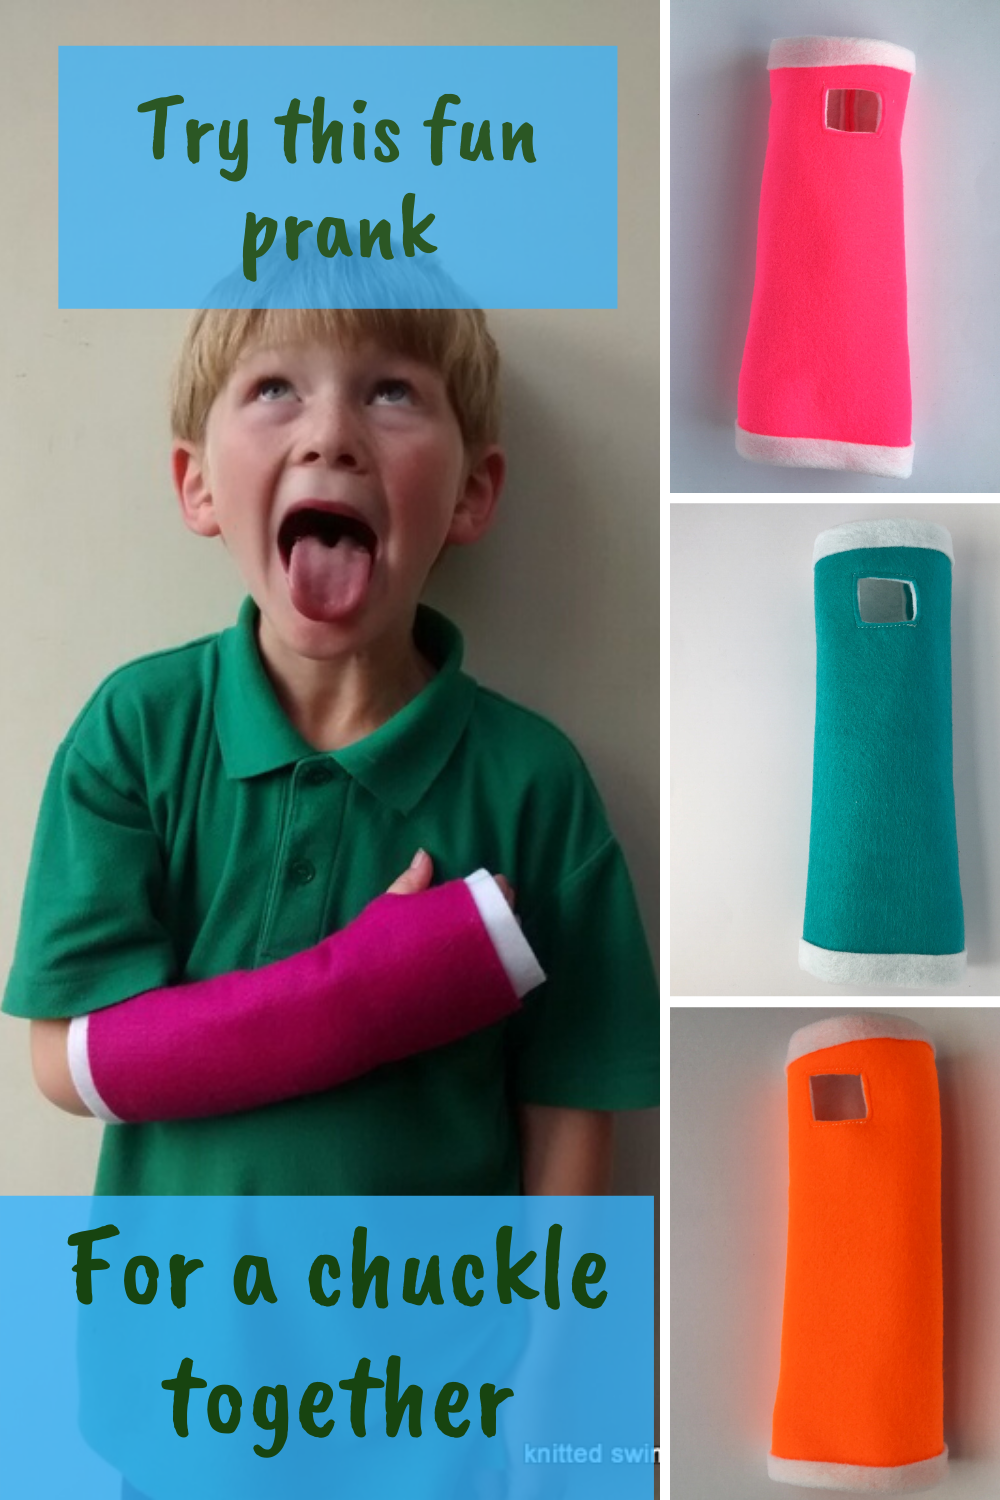 How To Fake A Broken Arm And Get A Cast